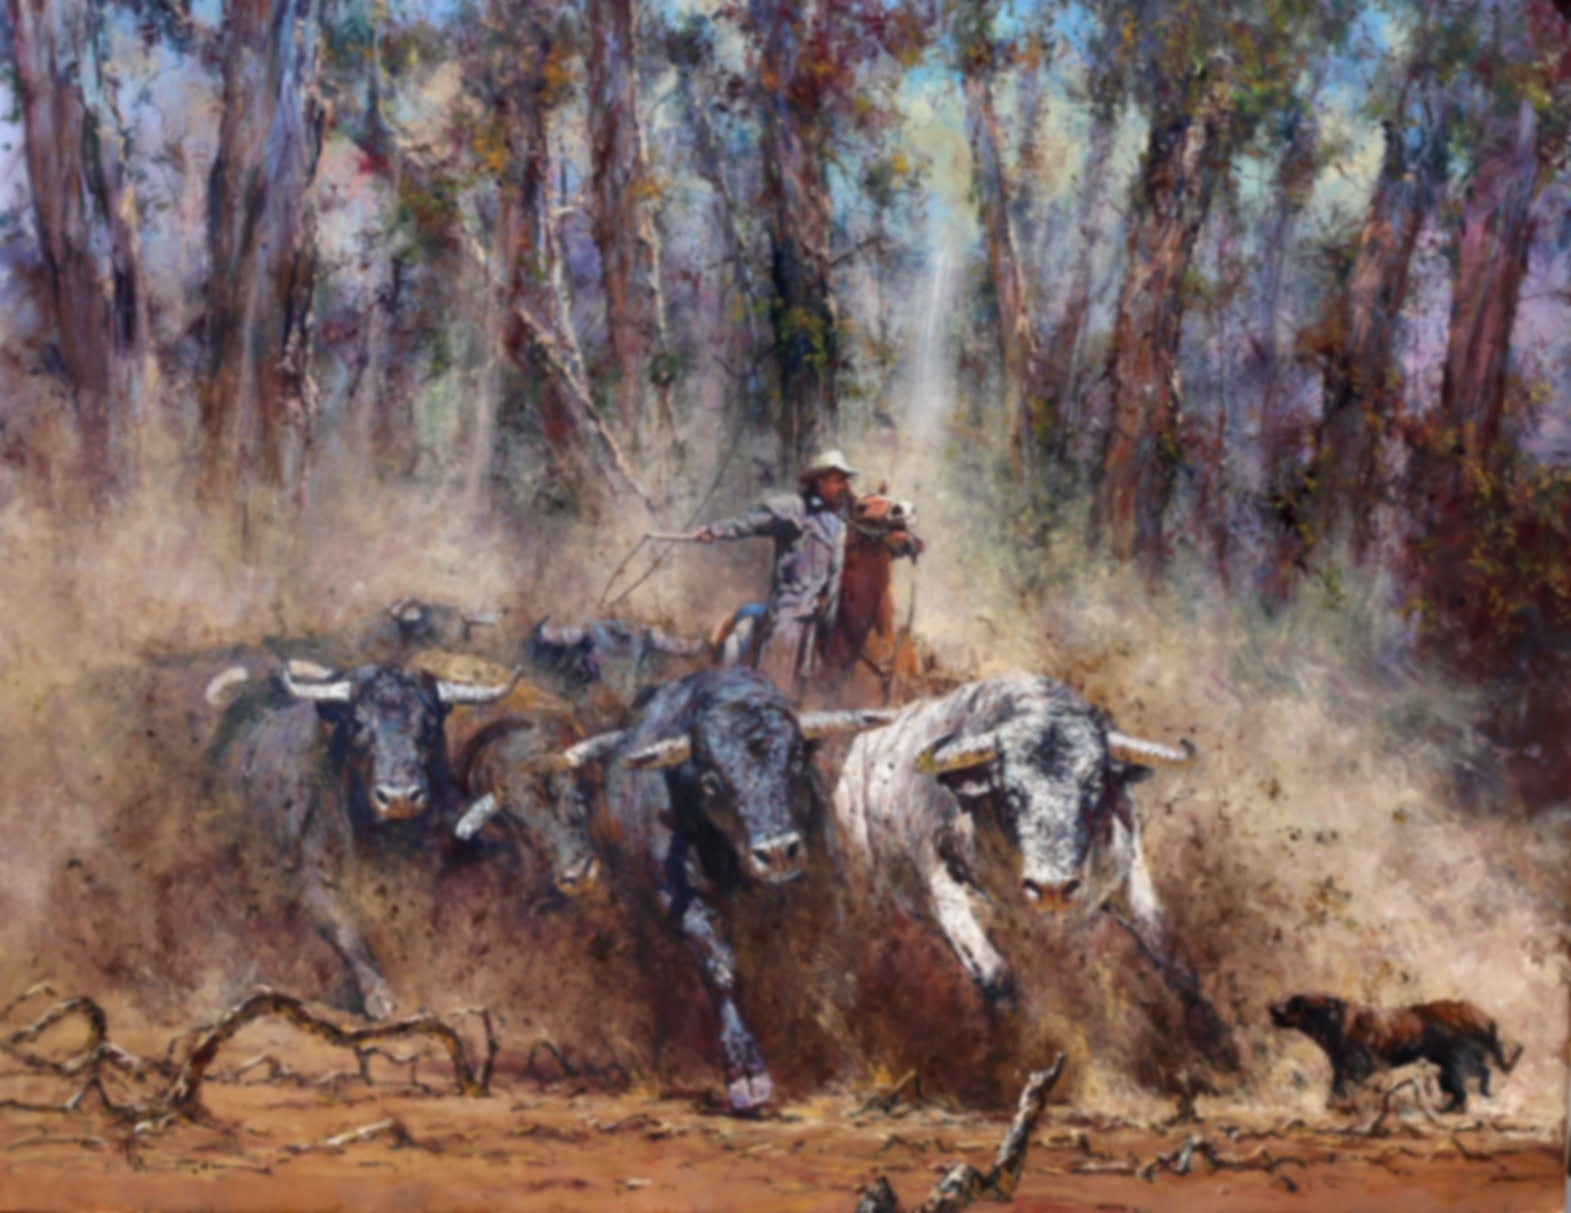 (CreativeWork) 'CHARGE'  -   BY ROBERT HAGAN -  INVESTMENT ART  by Robert Hagan. Oil Paint. Shop online at Bluethumb.